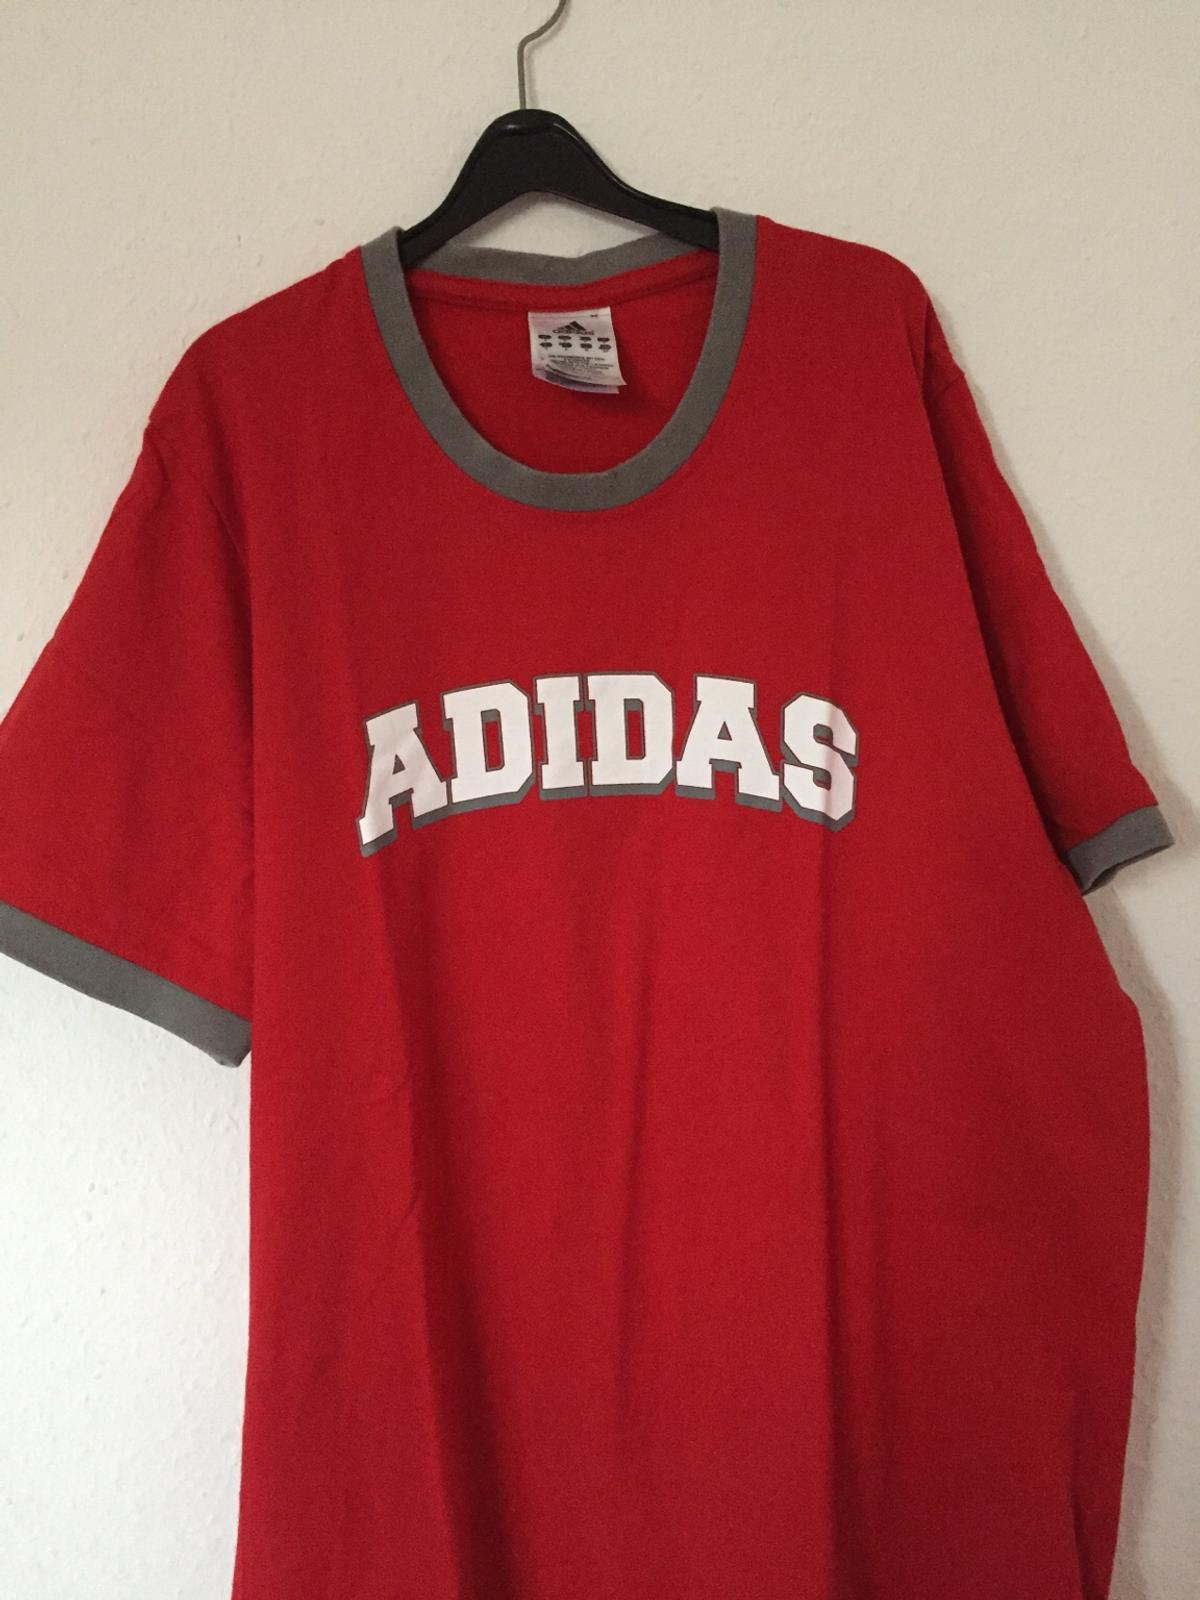 Adidas T Shirt in 67346 for €7.00 for sale | Shpock